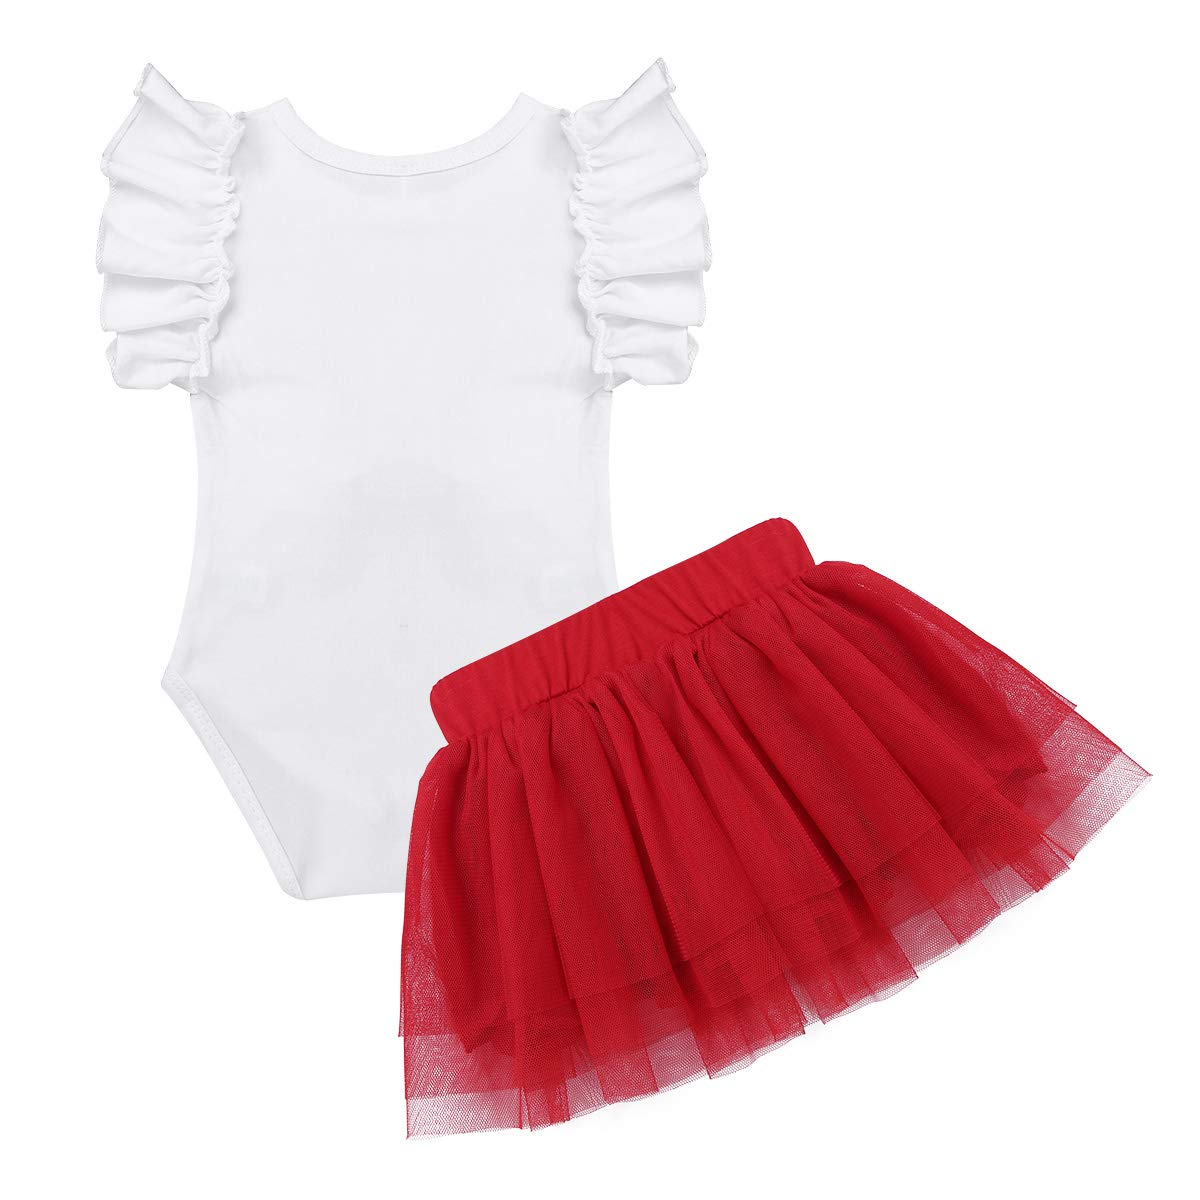 TiaoBug Baby Girls Christmas Romper with Tutu Skirt Headband Outfits